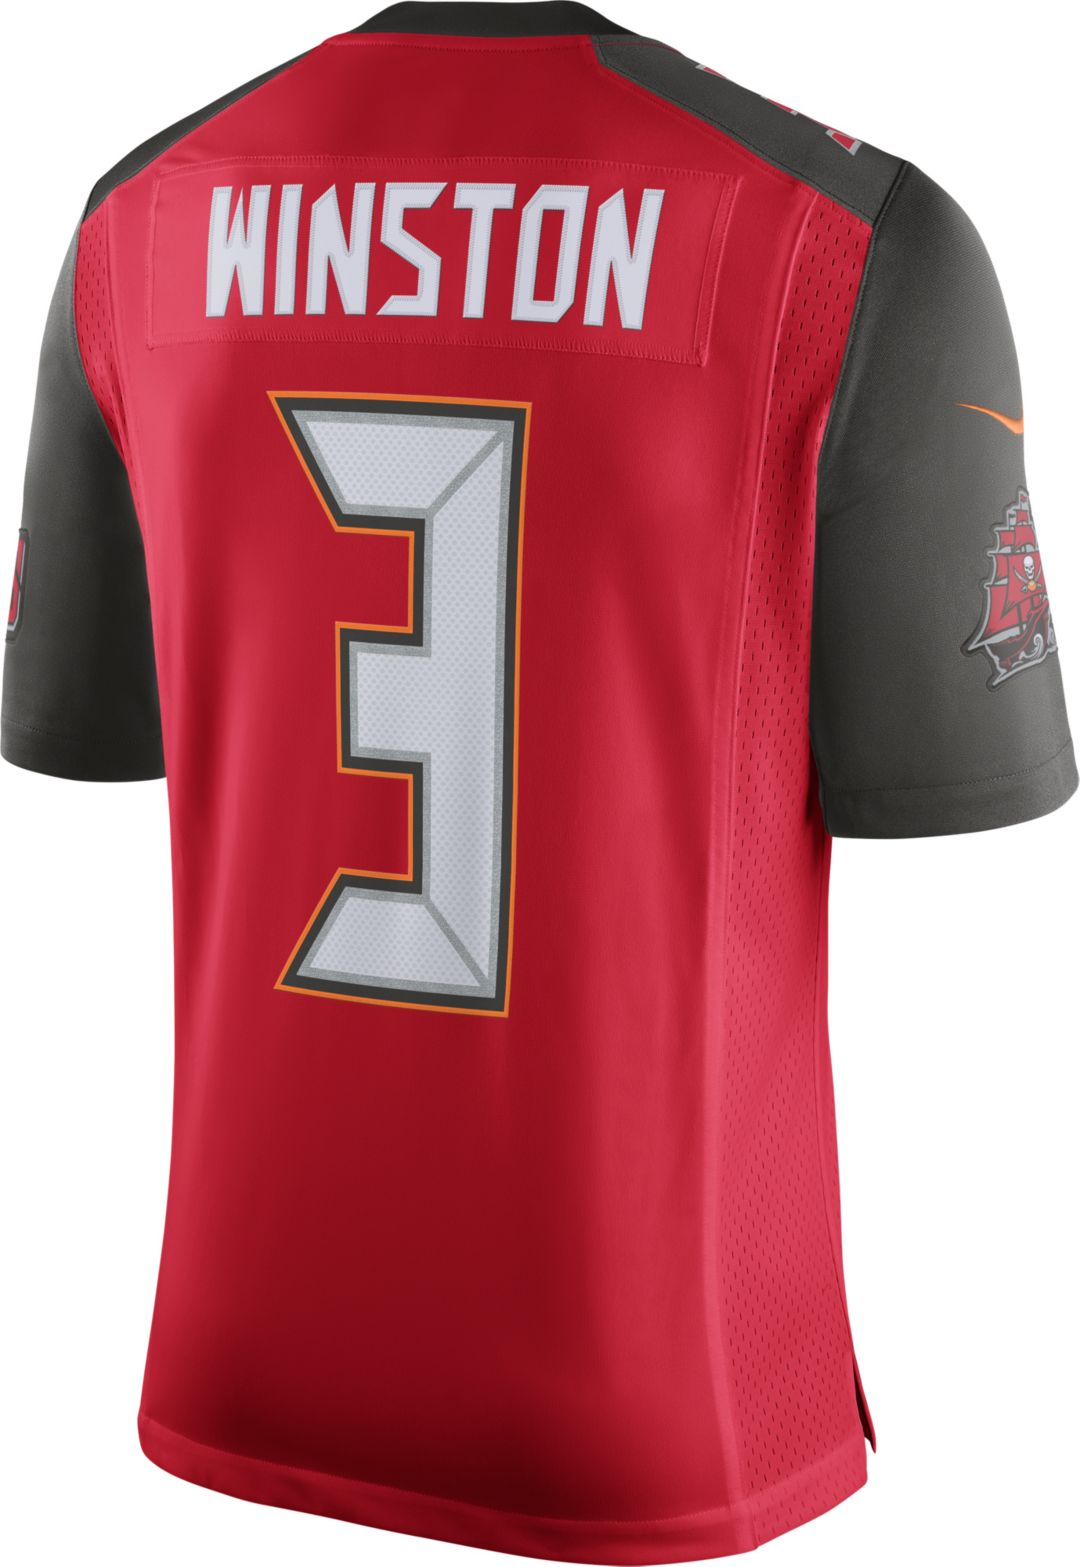 34aefc25 Nike Men's Home Limited Jersey Tampa Bay Buccaneers Jameis Winston #3